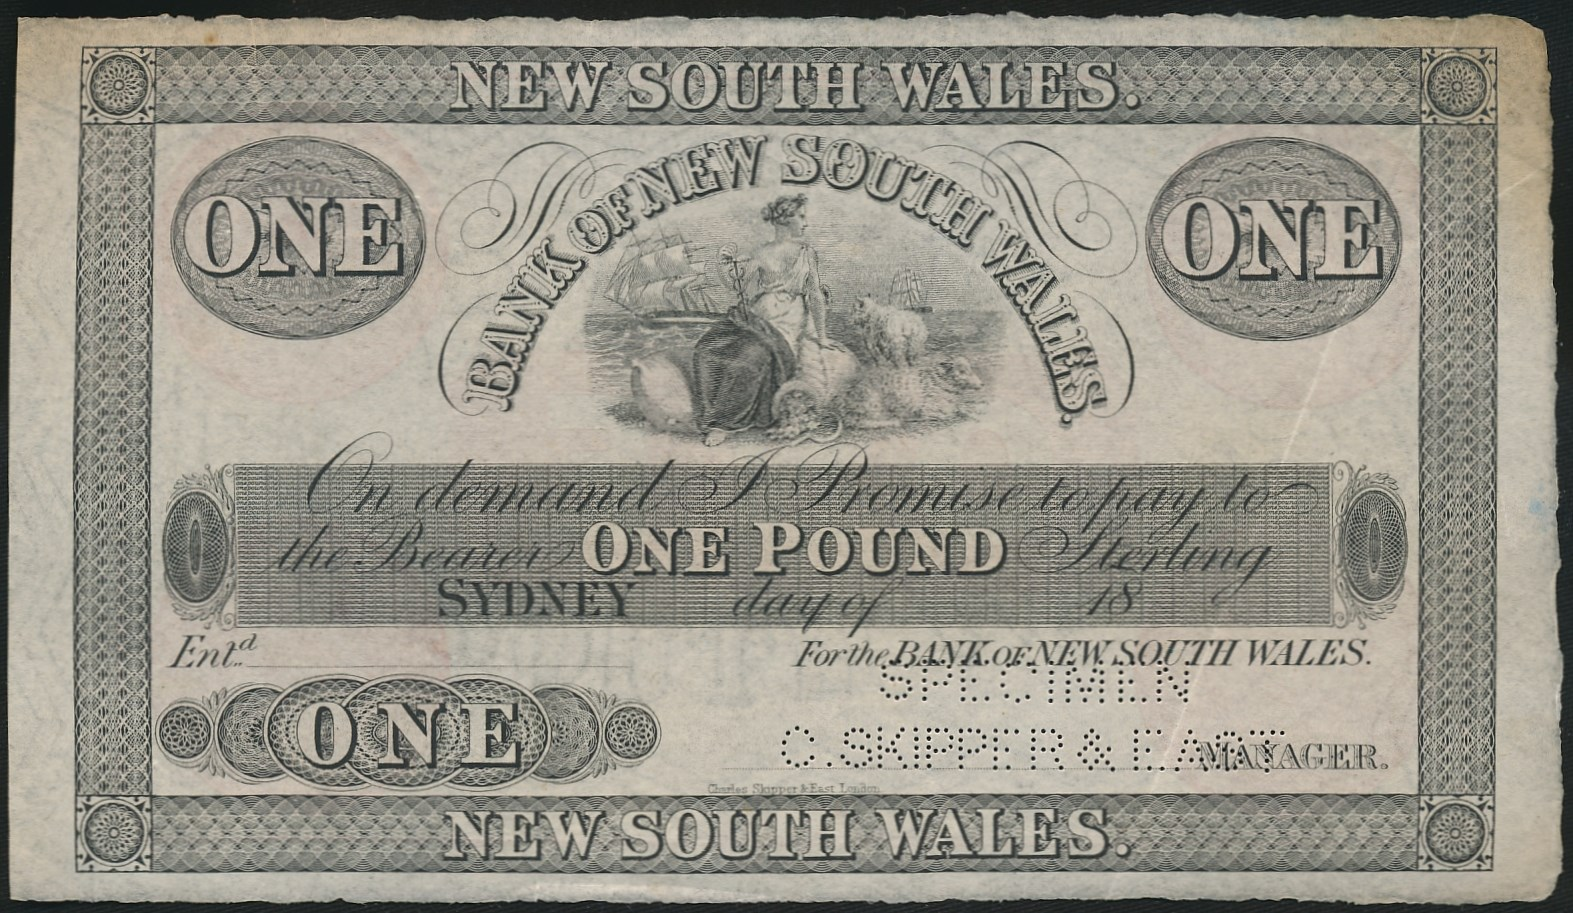 Australia-c1880s-Bank-of-New-South-Wales-Sydney-1-Specimen-Cat-27-000-RARE